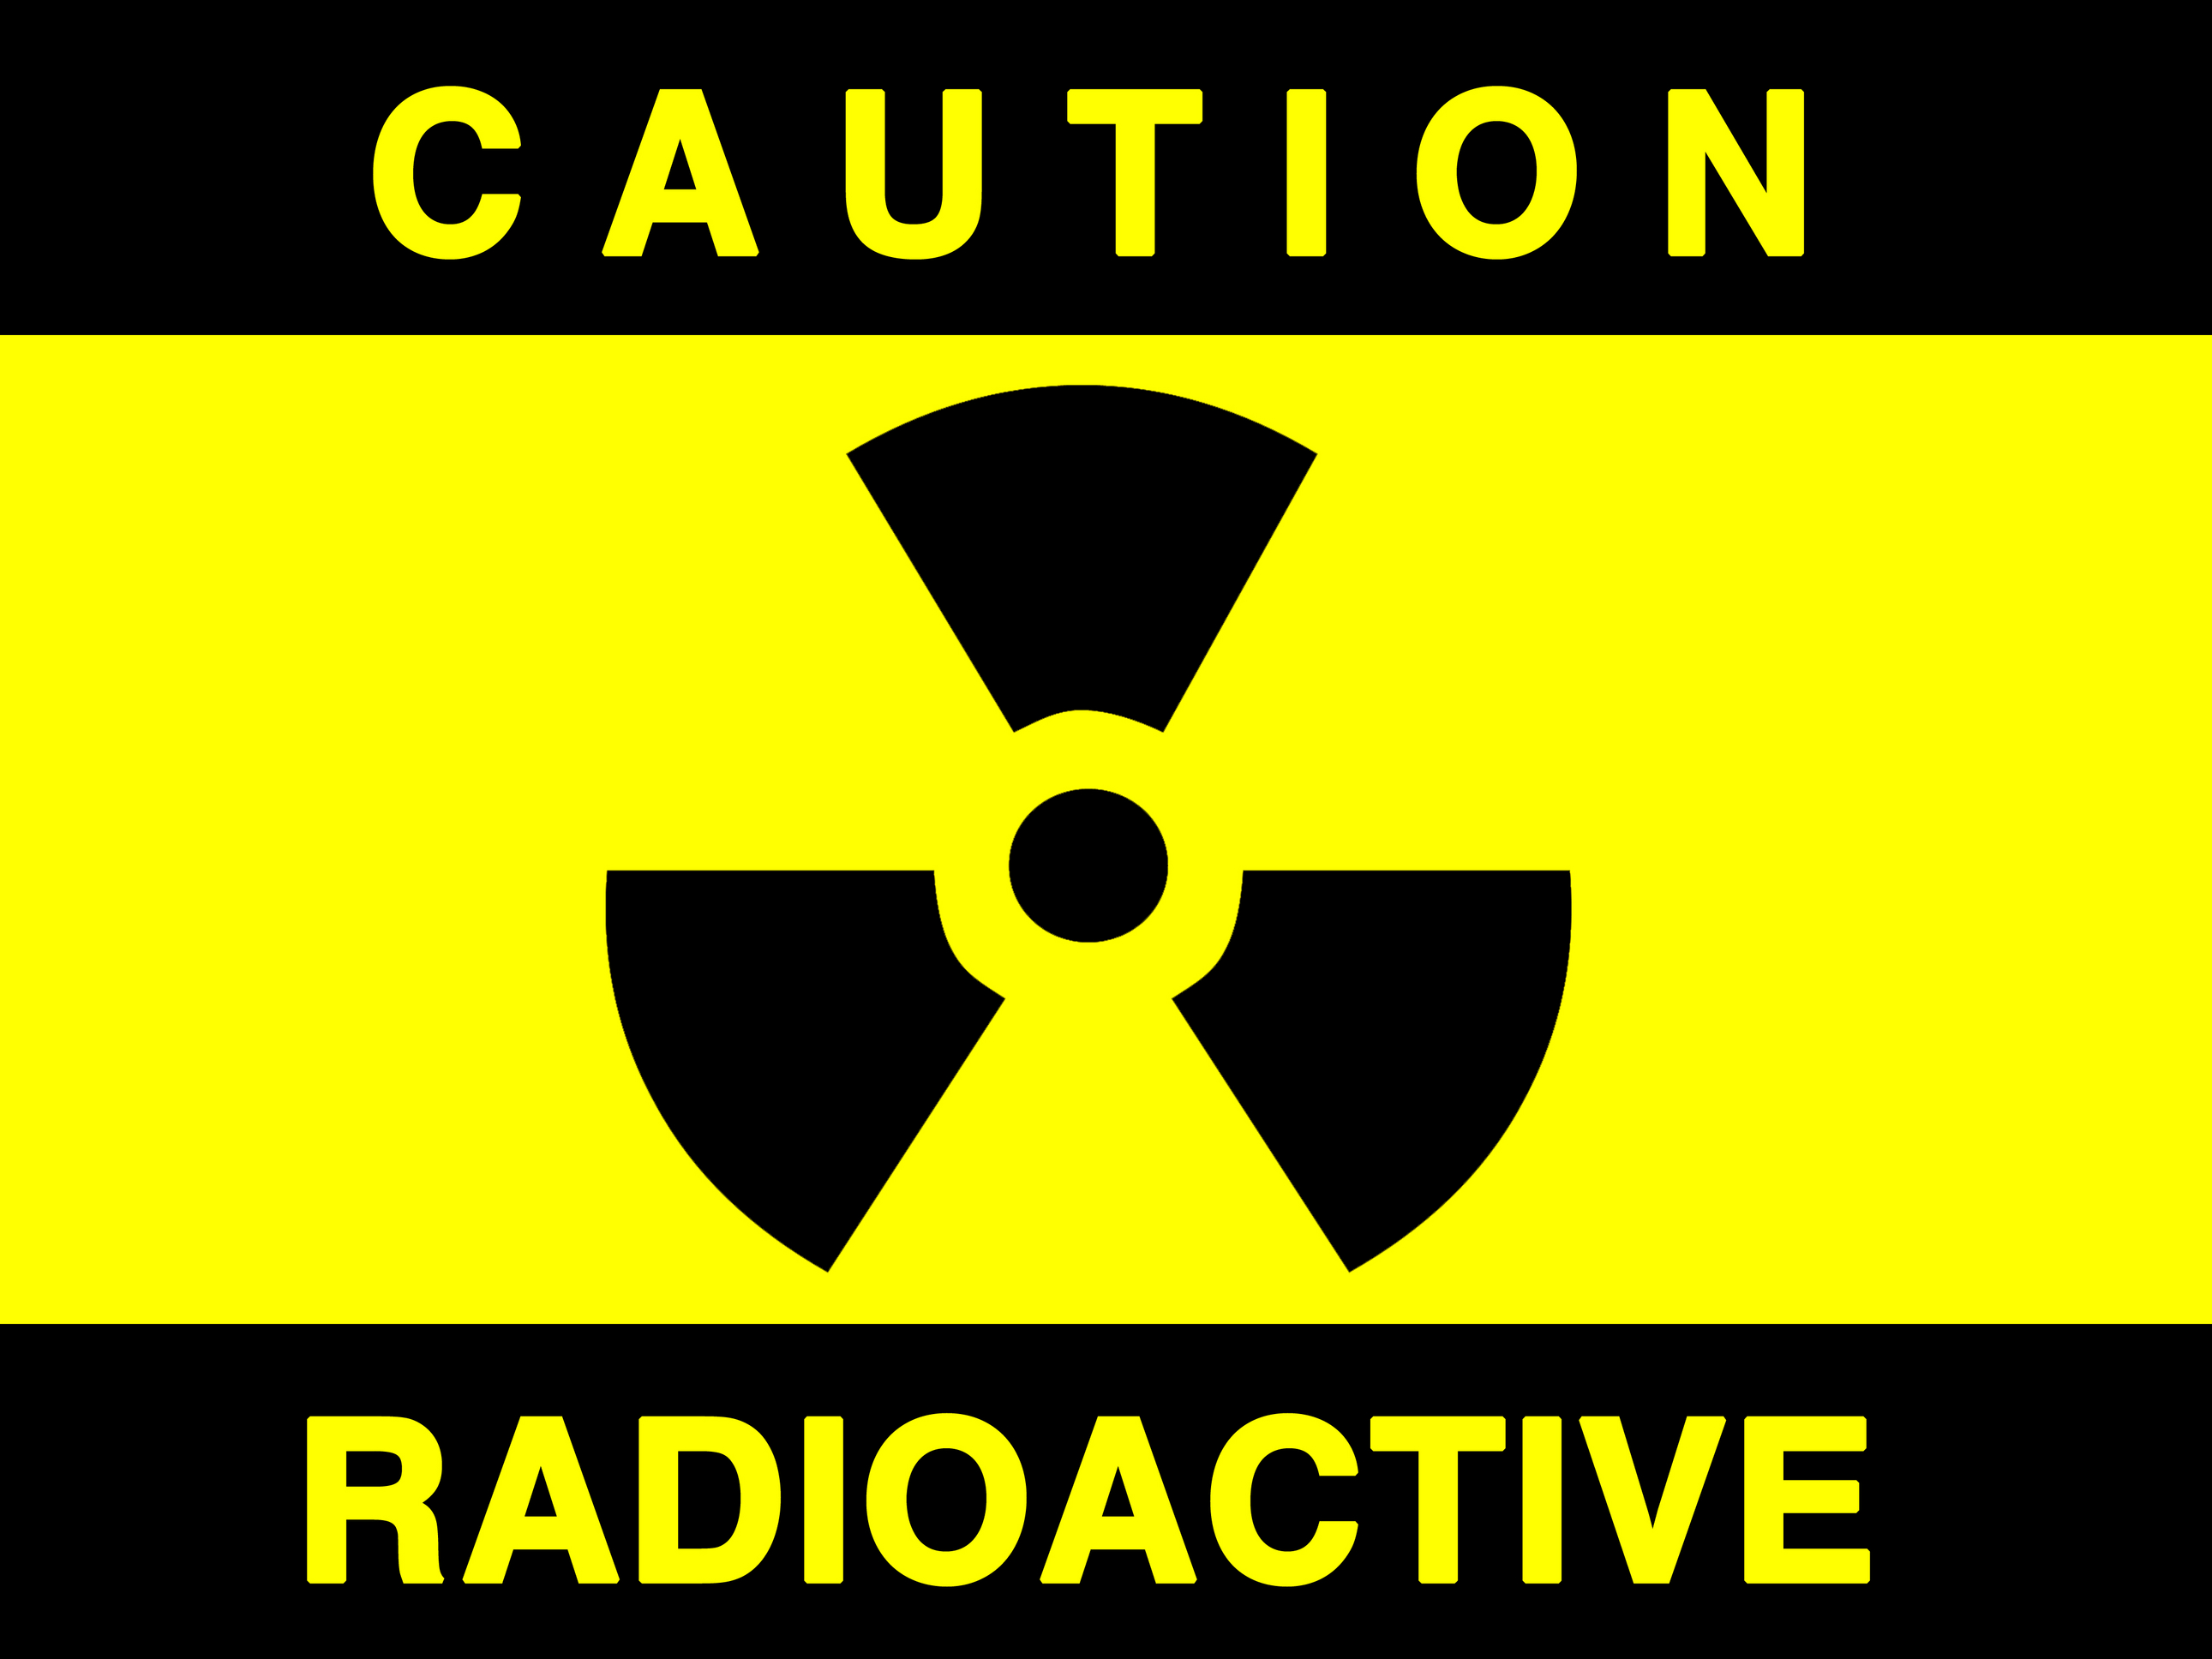 HQ Radioactive Wallpapers | File 468.49Kb